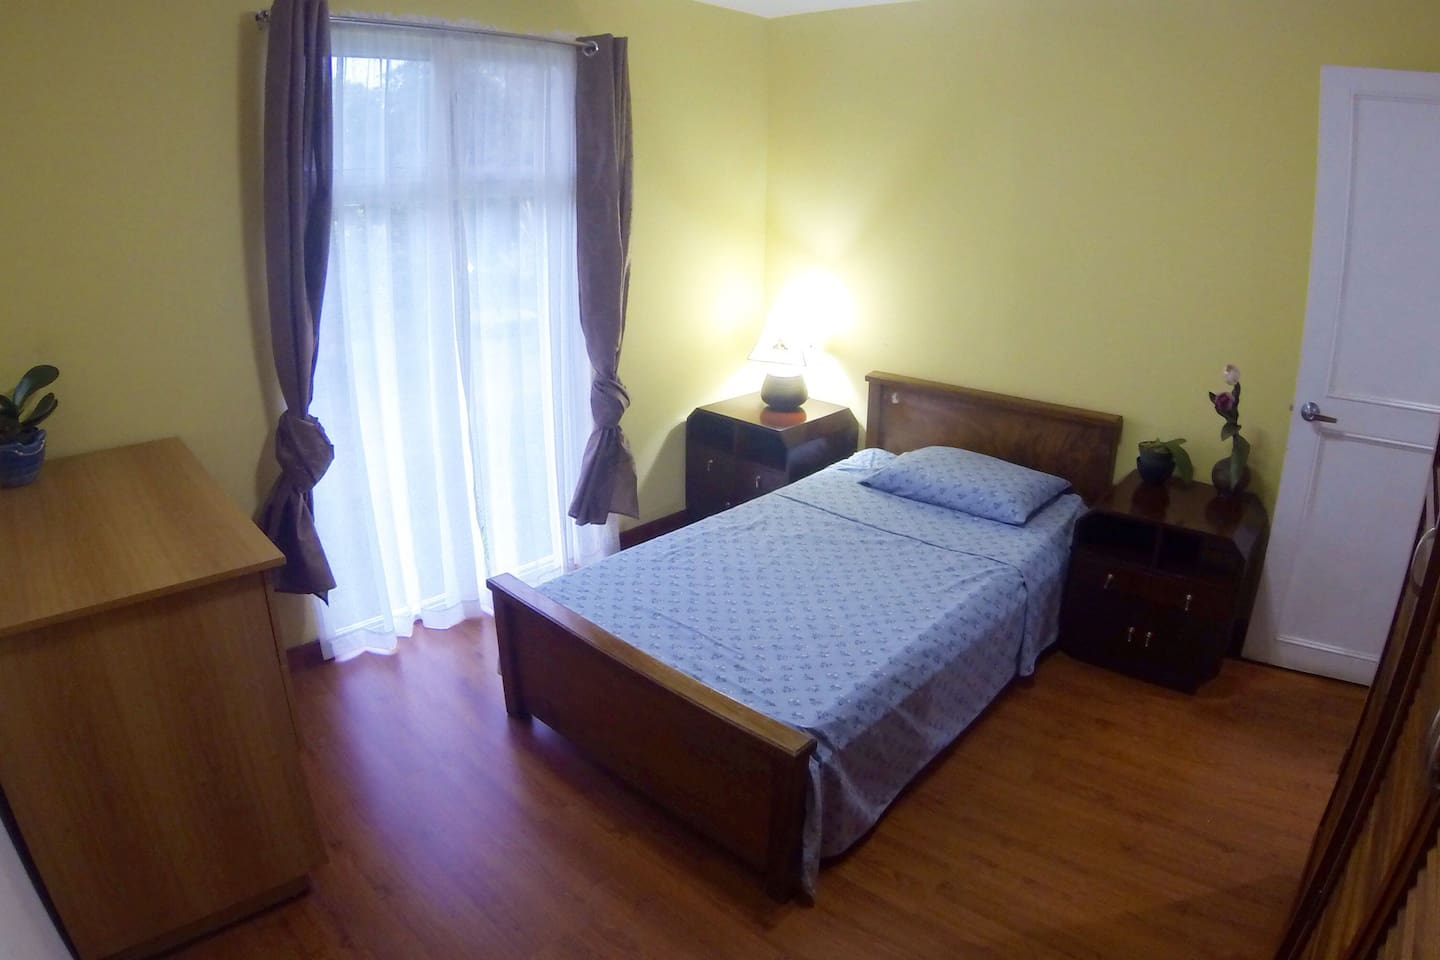 Nice private room with single bed and closet